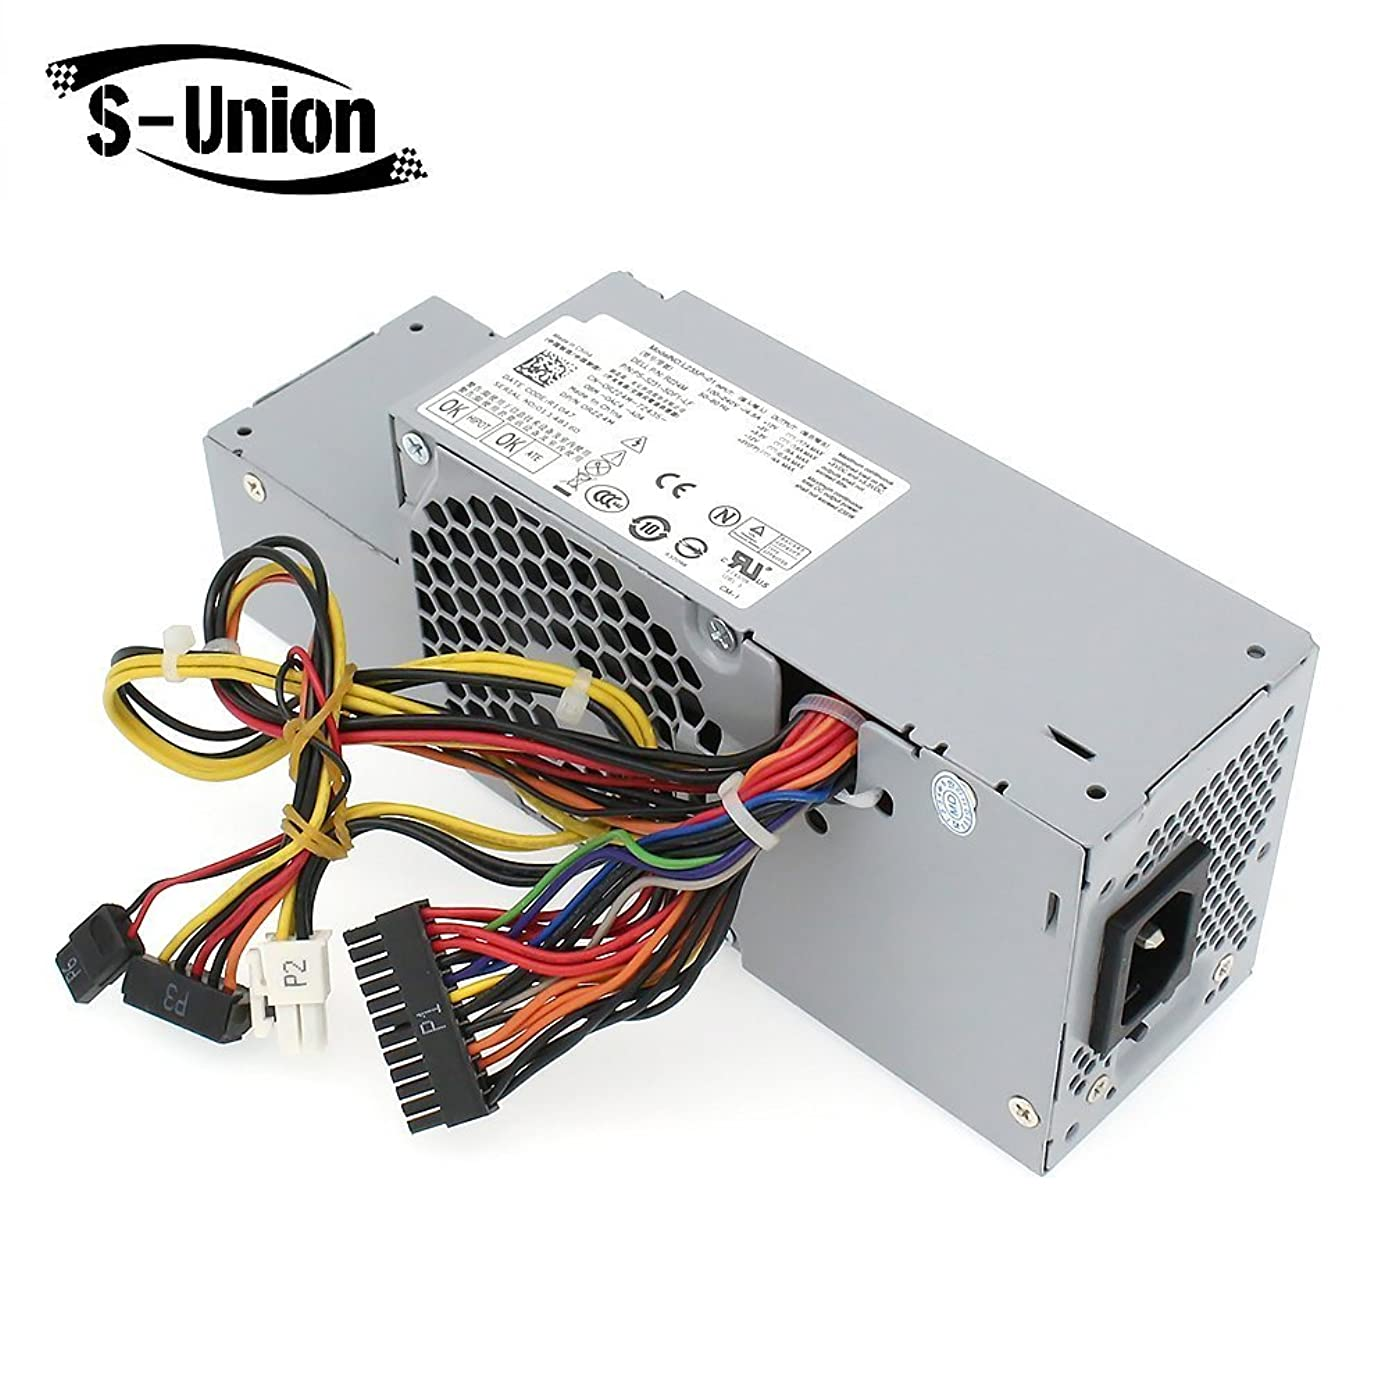 S-Union FR610 WU136 PW116 67T67 RM112 R224M 235W Power Supply Compatible for Dell Optiplex 760, 960 780 580 SFF Systems, Model Numbers H235P-00 L235P-01 L235P-00 H235E-00 F235E-00 L235ES-00